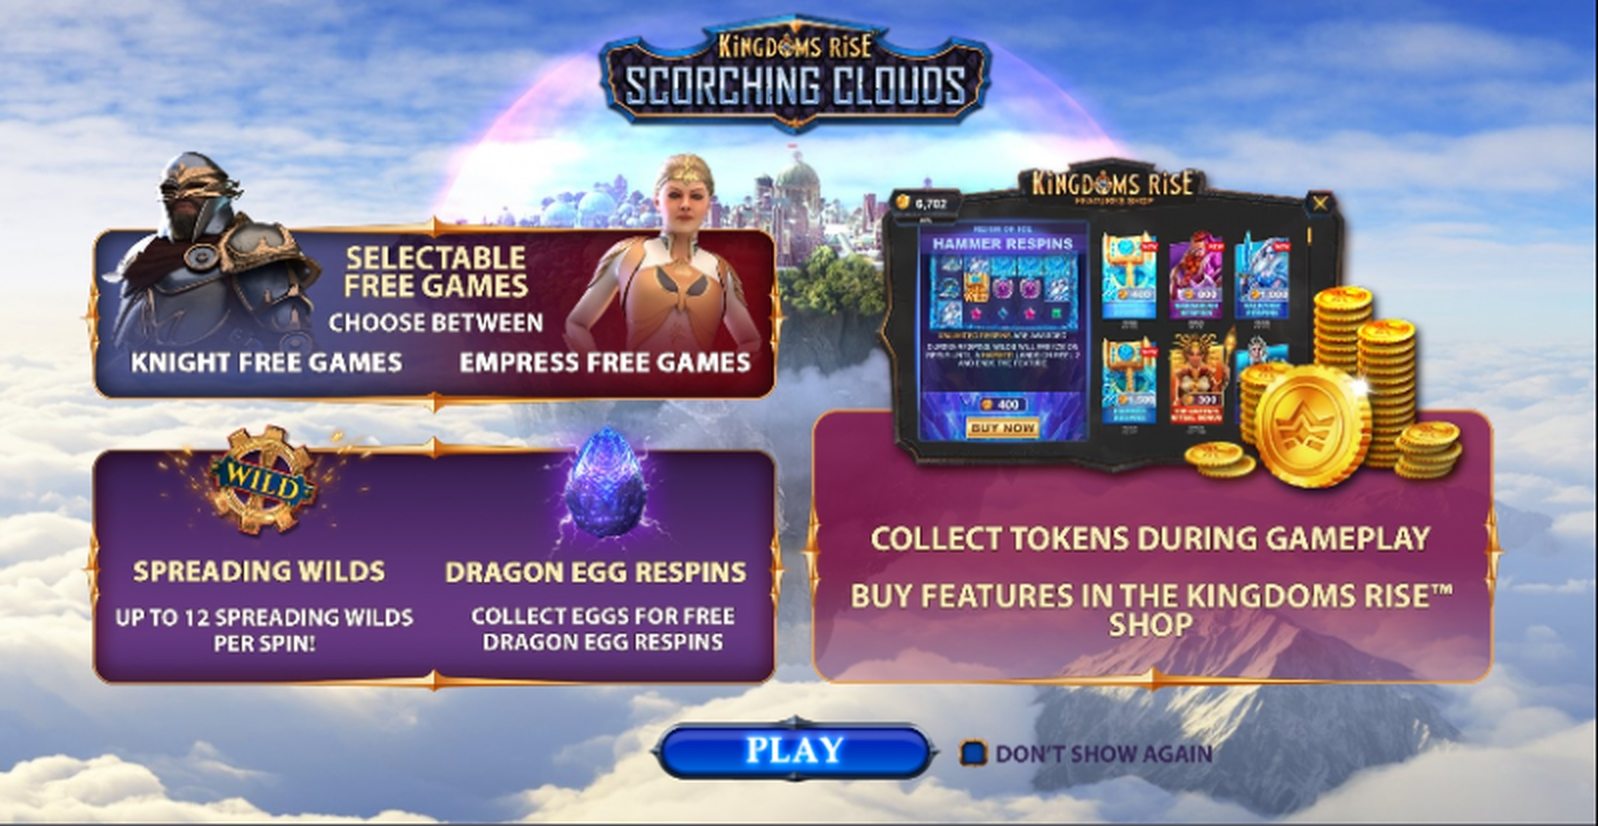 Info of Kingdoms Rise: Scorching Clouds Slot Game by SUNfox Games